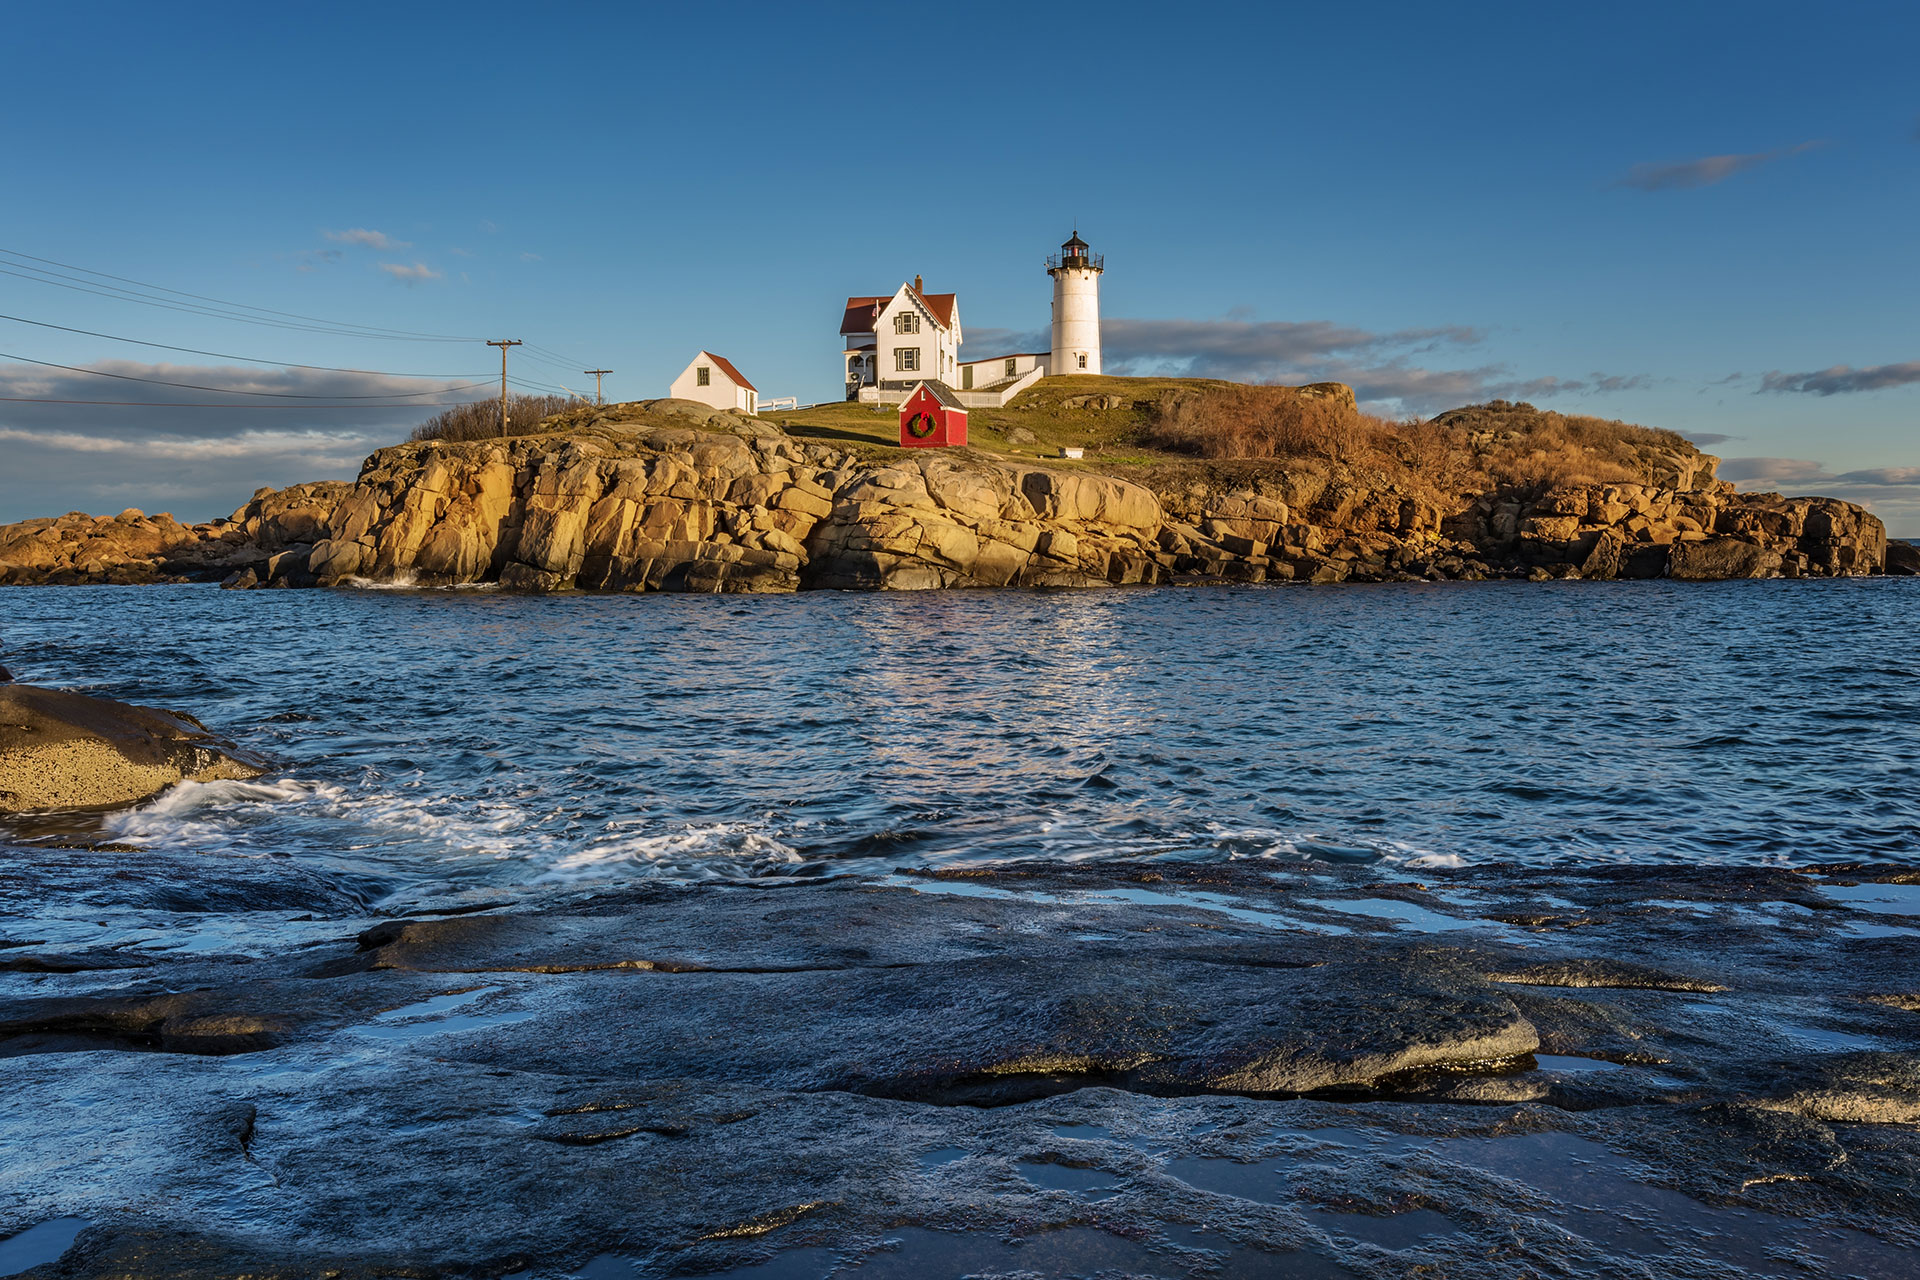 Nubble Lighthouse in York, Maine Festival